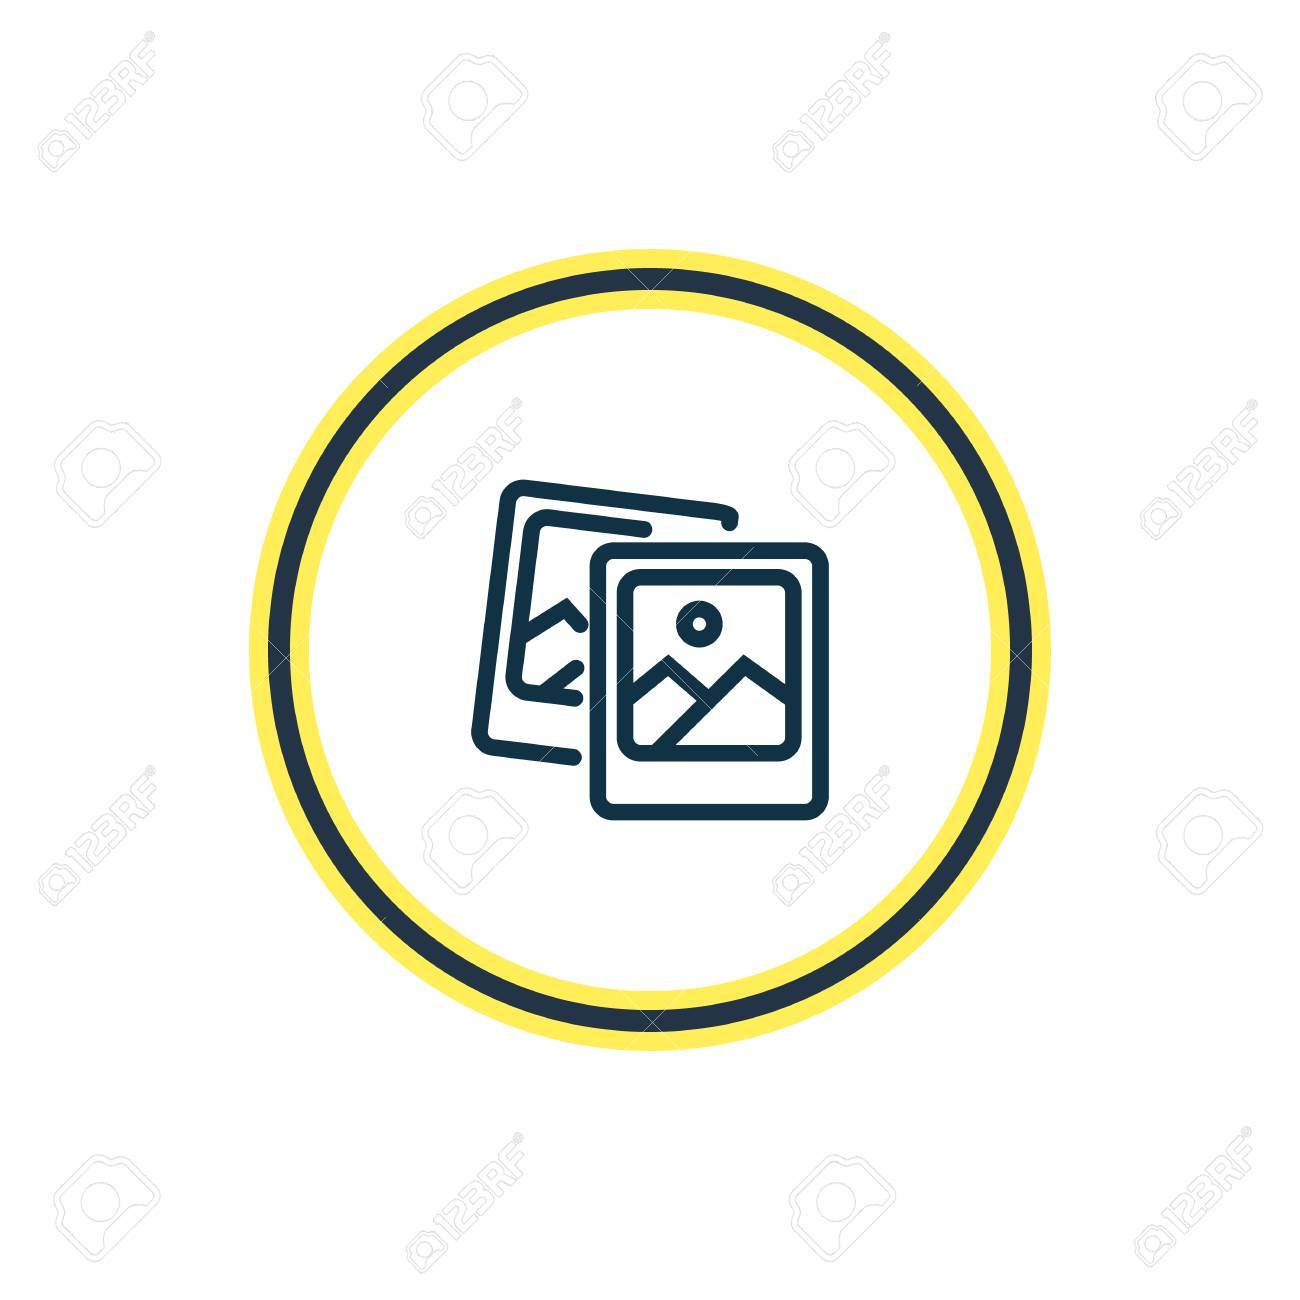 Vector illustration of polaroid pics icon line. Beautiful celebration element also can be used as image icon element. - 106599880